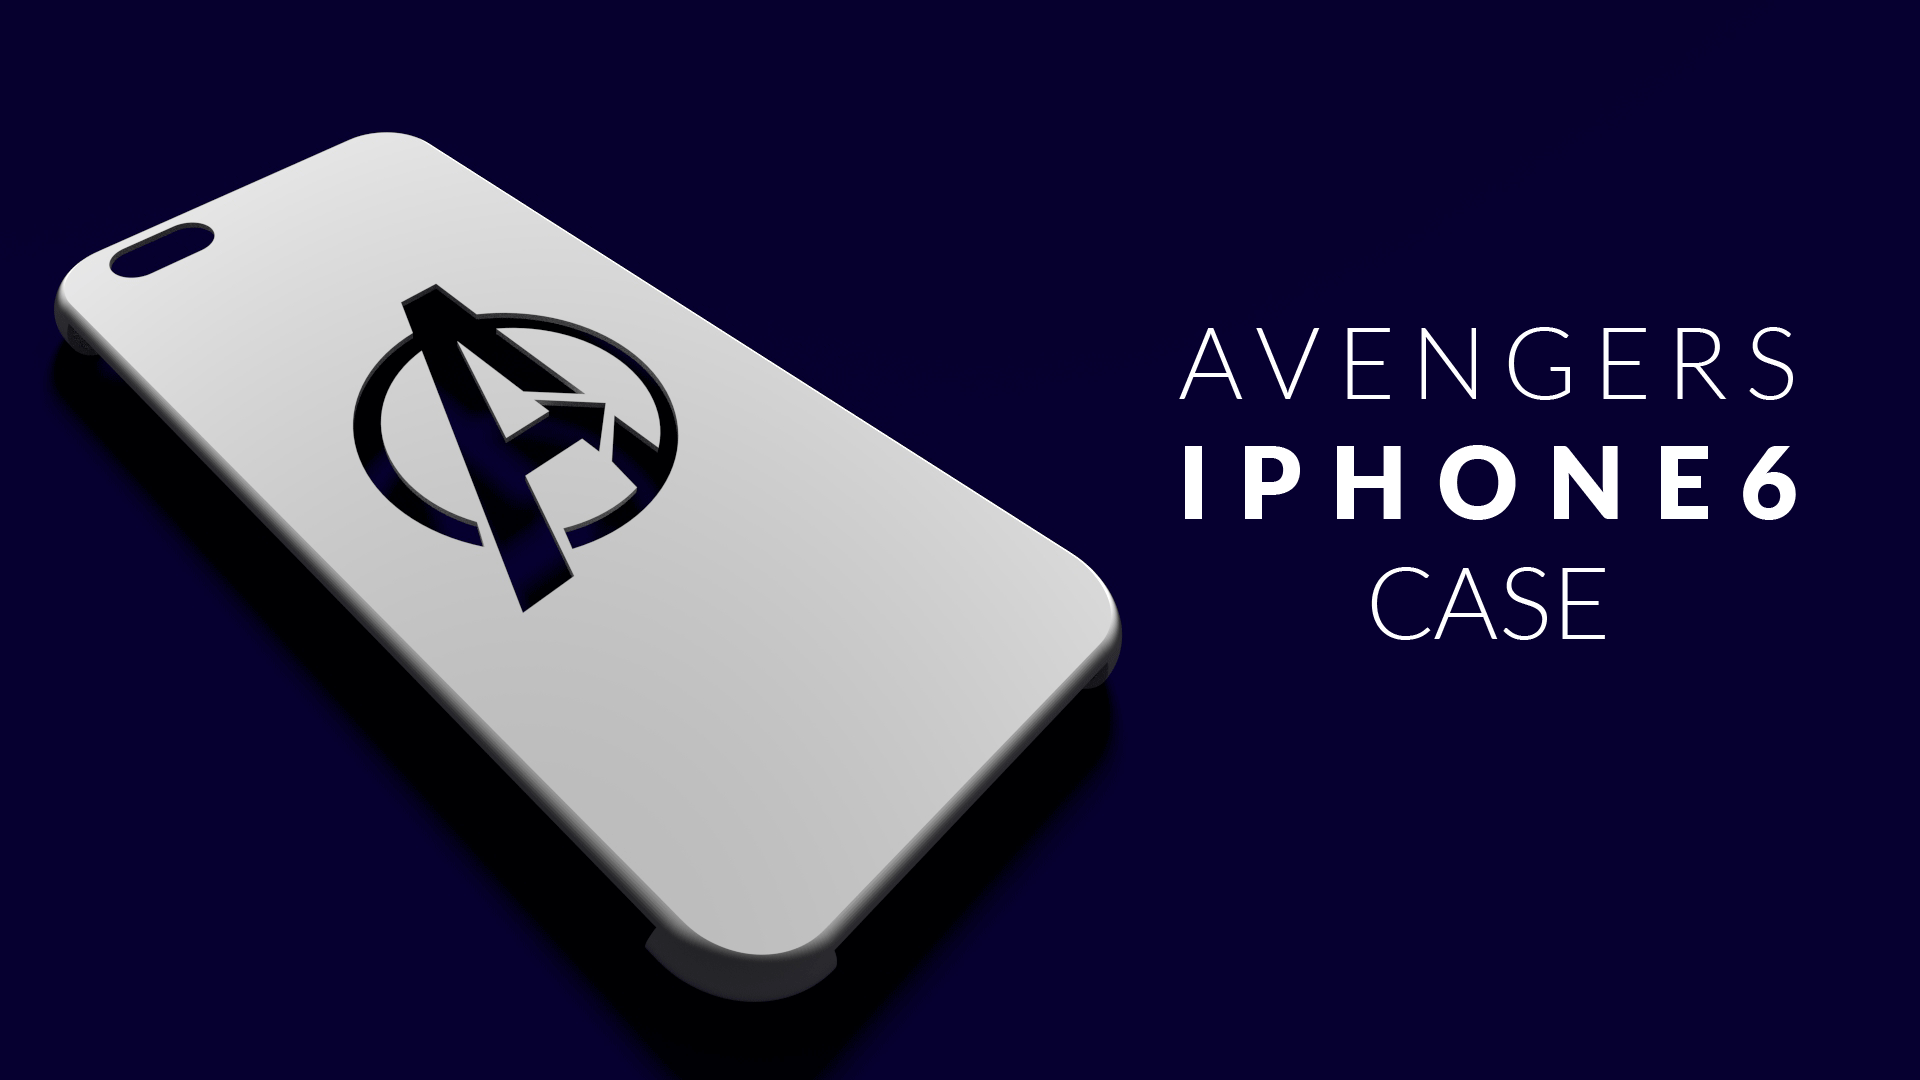 Picture of print of Avengers iPhone 6 Phone Case This print has been uploaded by Hung-Manh NGUYEN